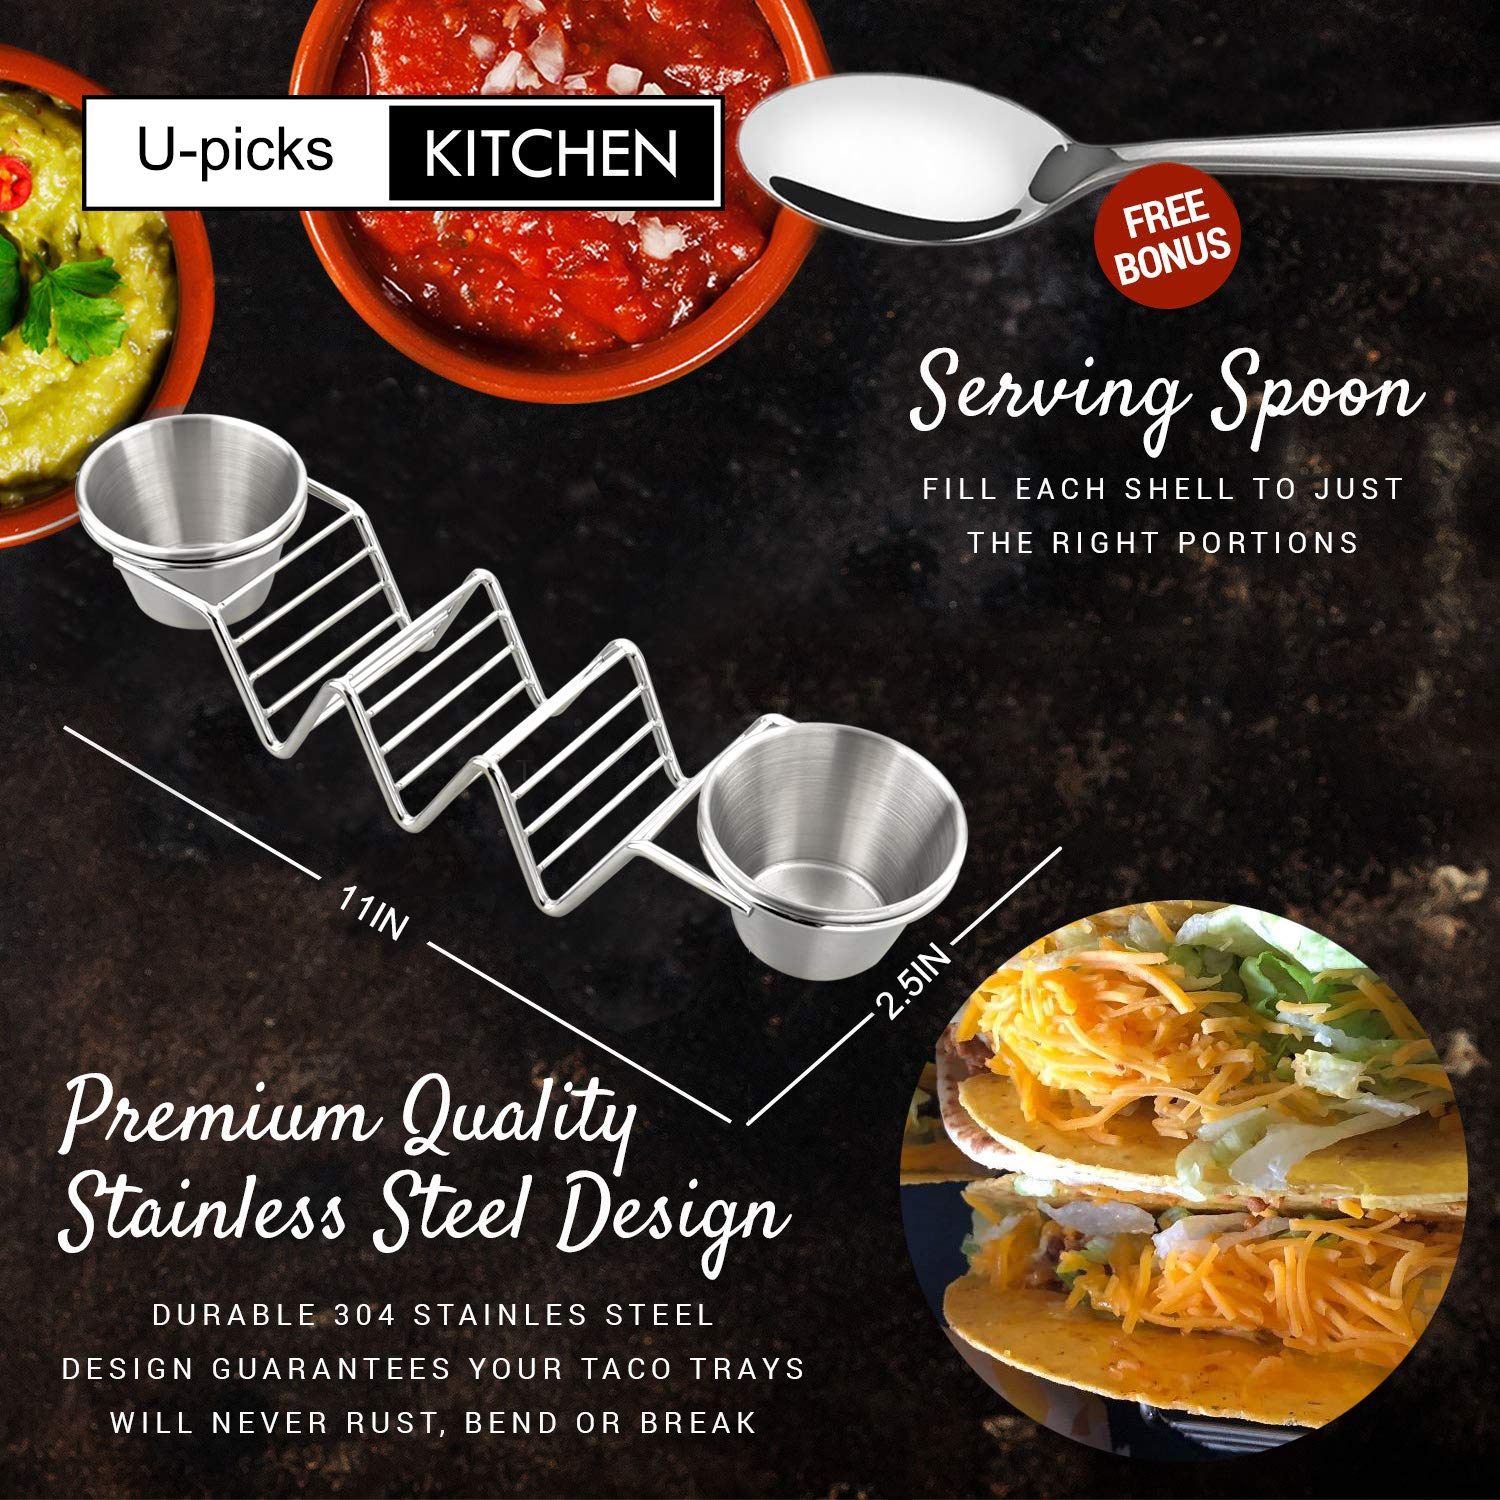 Upgrade Taco Shell Stand Up Holders-4 Pack Premium Stainless Steel Taco Holder with 8 Salad Cups & 4 Spoons,Holds 3 Tacos Each Keeping Shells Upright & Neat by U-picks (Image #4)